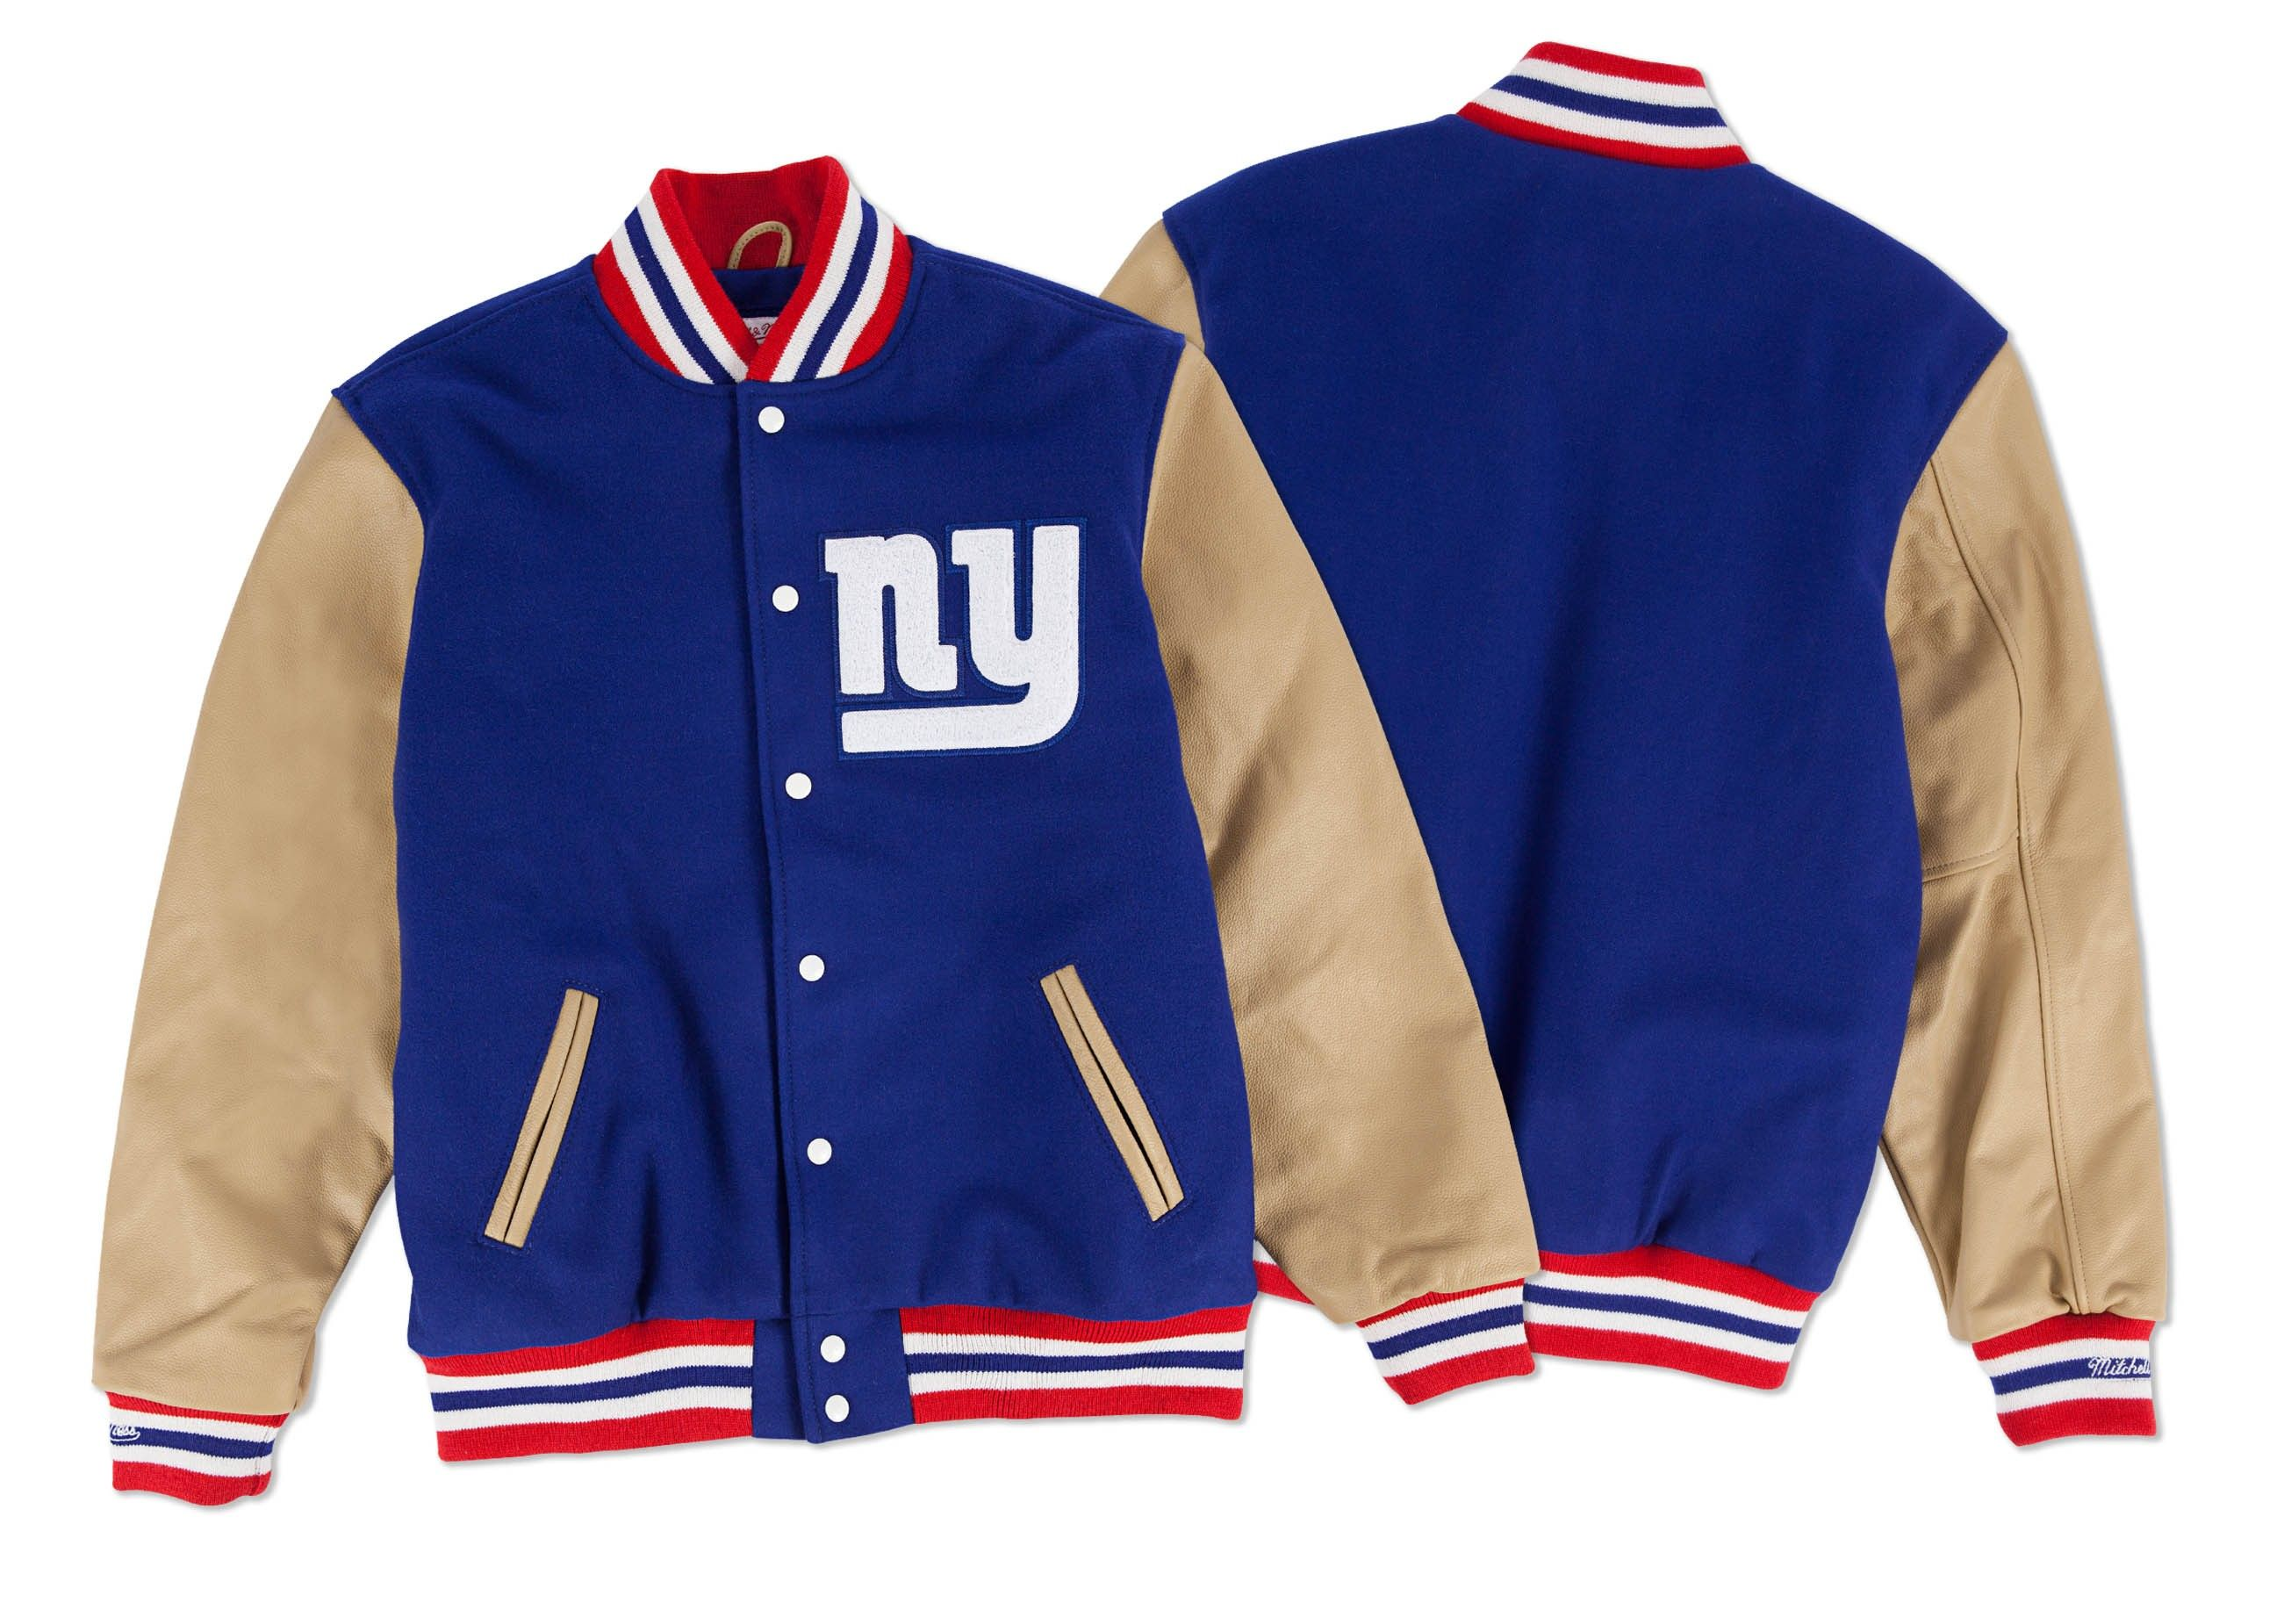 wholesale dealer e7675 61819 Wool Jacket New York Giants - Shop Mitchell & Ness NFL ...